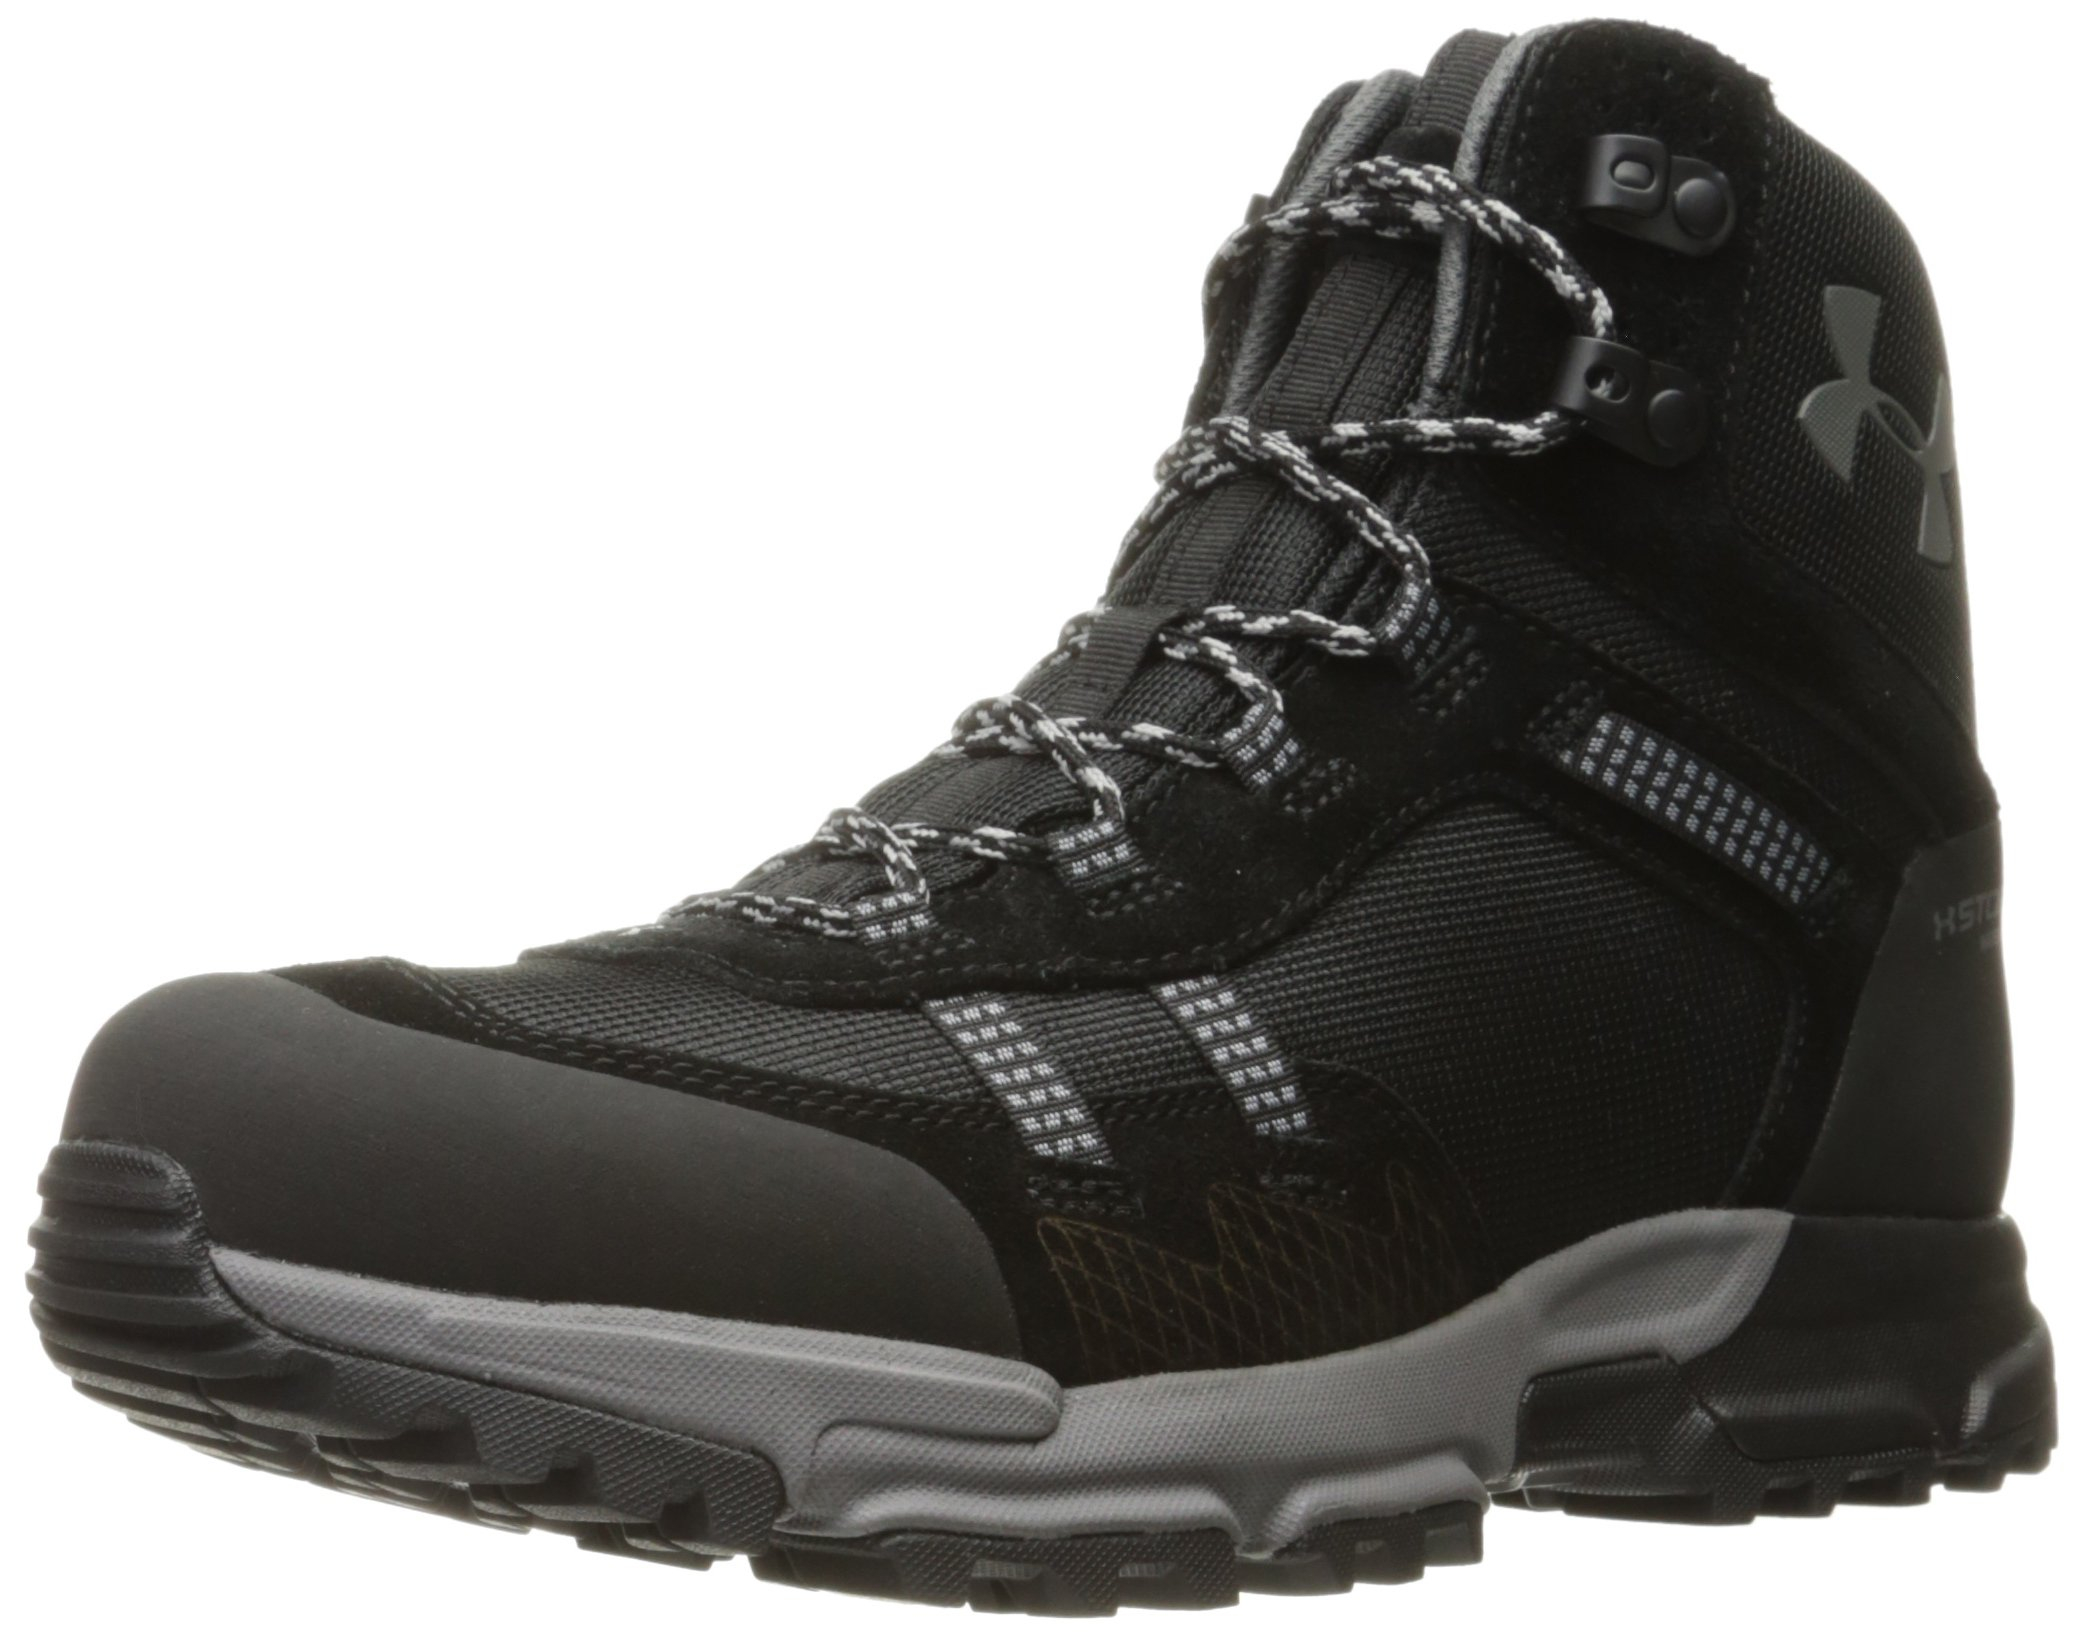 Under Armour Canyon Waterproof Hiking